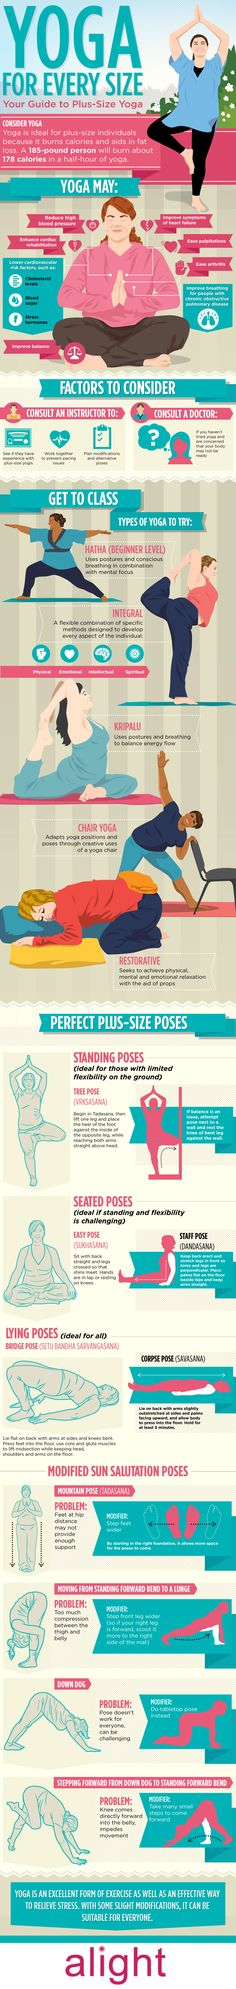 Yoga for Every Size: Your Guide to Plus Size Yoga #infographic #Yoga #Health #infografía